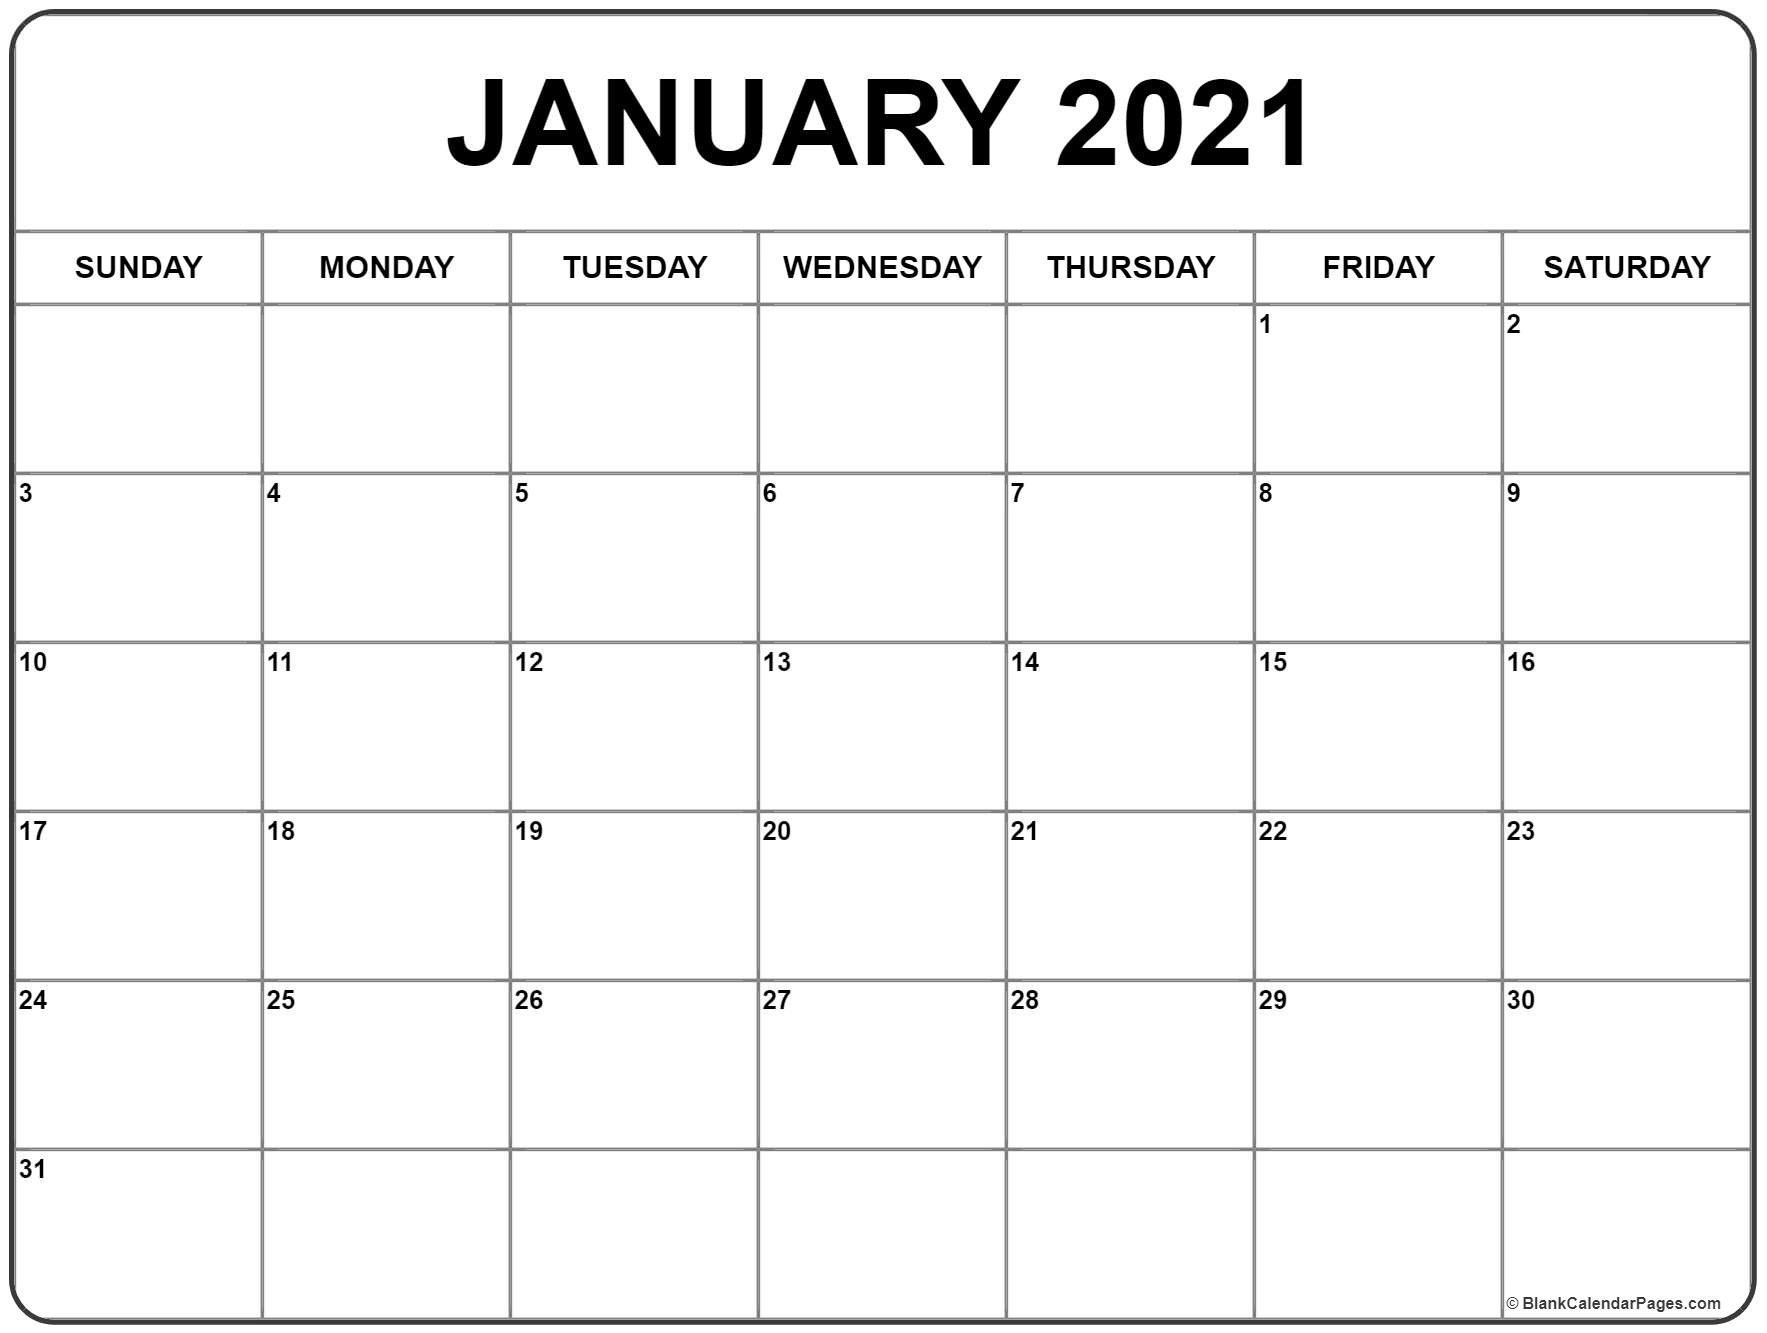 Free January 2021 Calendar Page In 2020 | Monthly Calendar